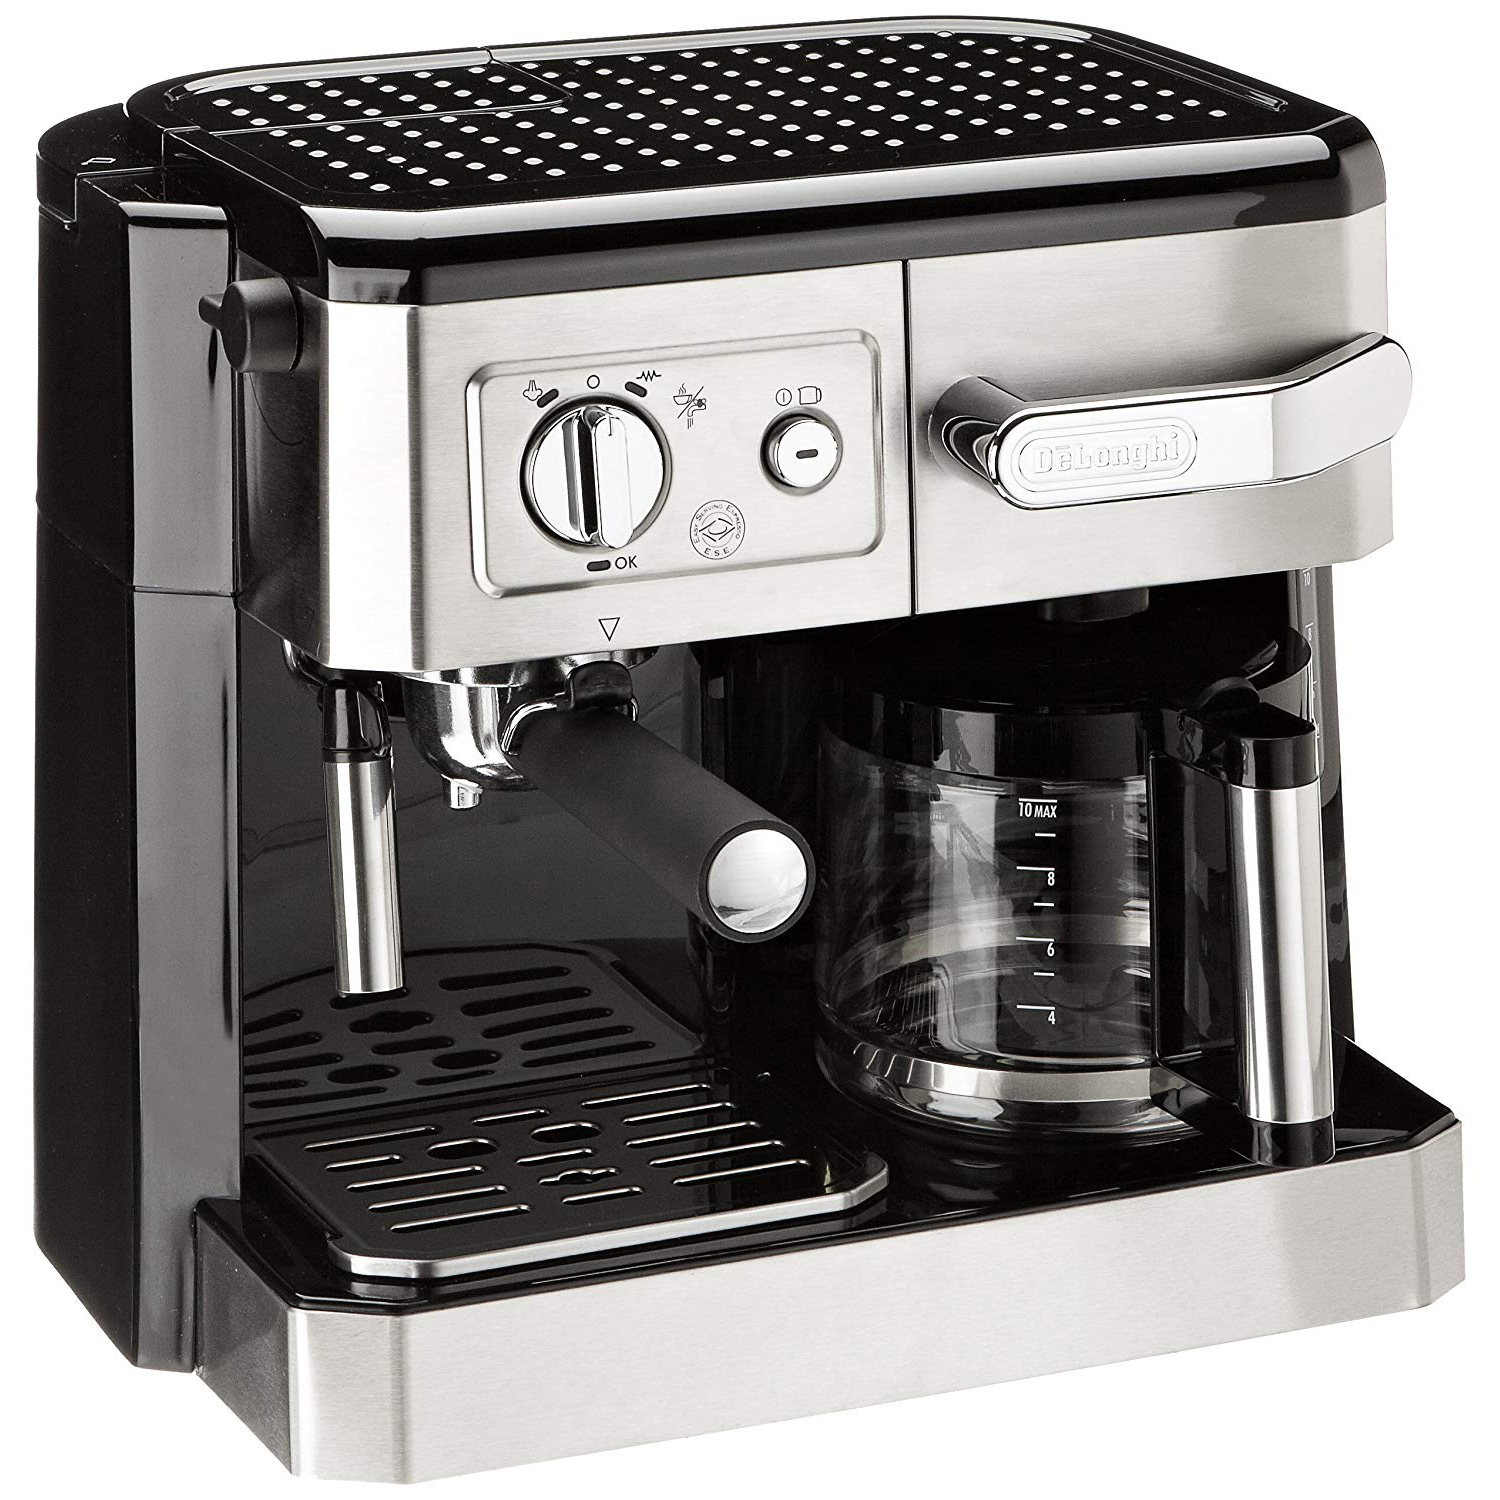 De'Longhi BCO420 Combi Coffee Machine - Silver